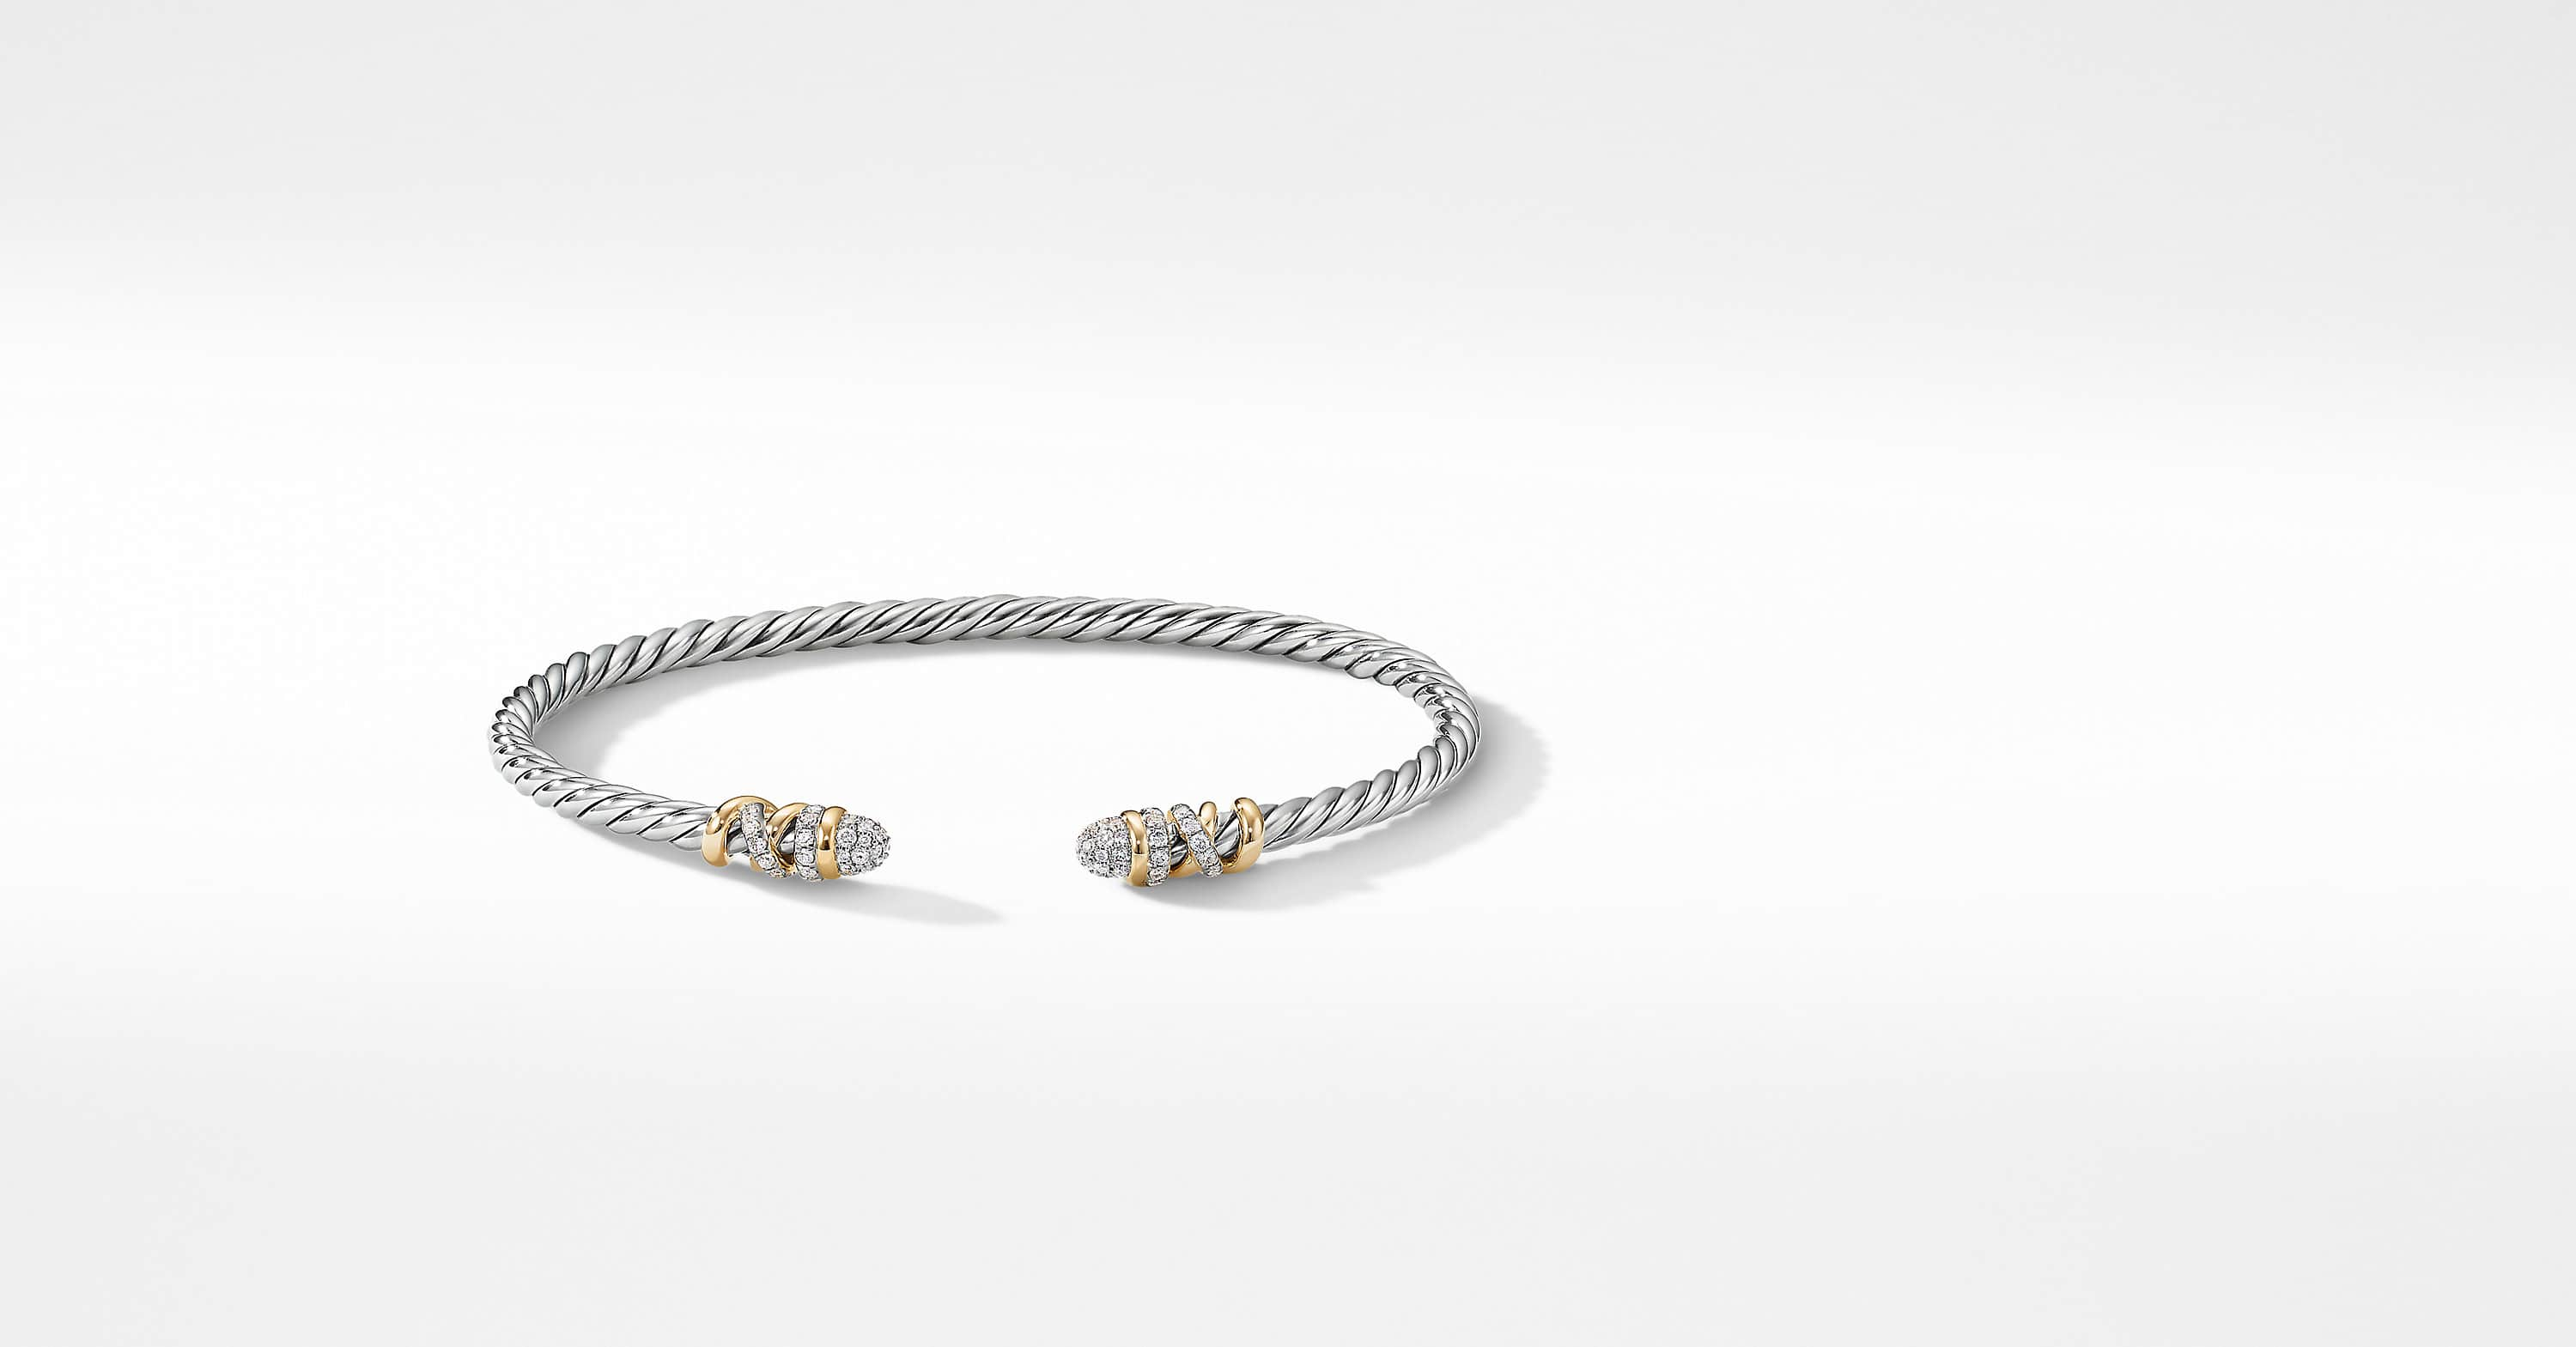 Petite Helena Bracelet with Diamonds and 18K Yellow Gold